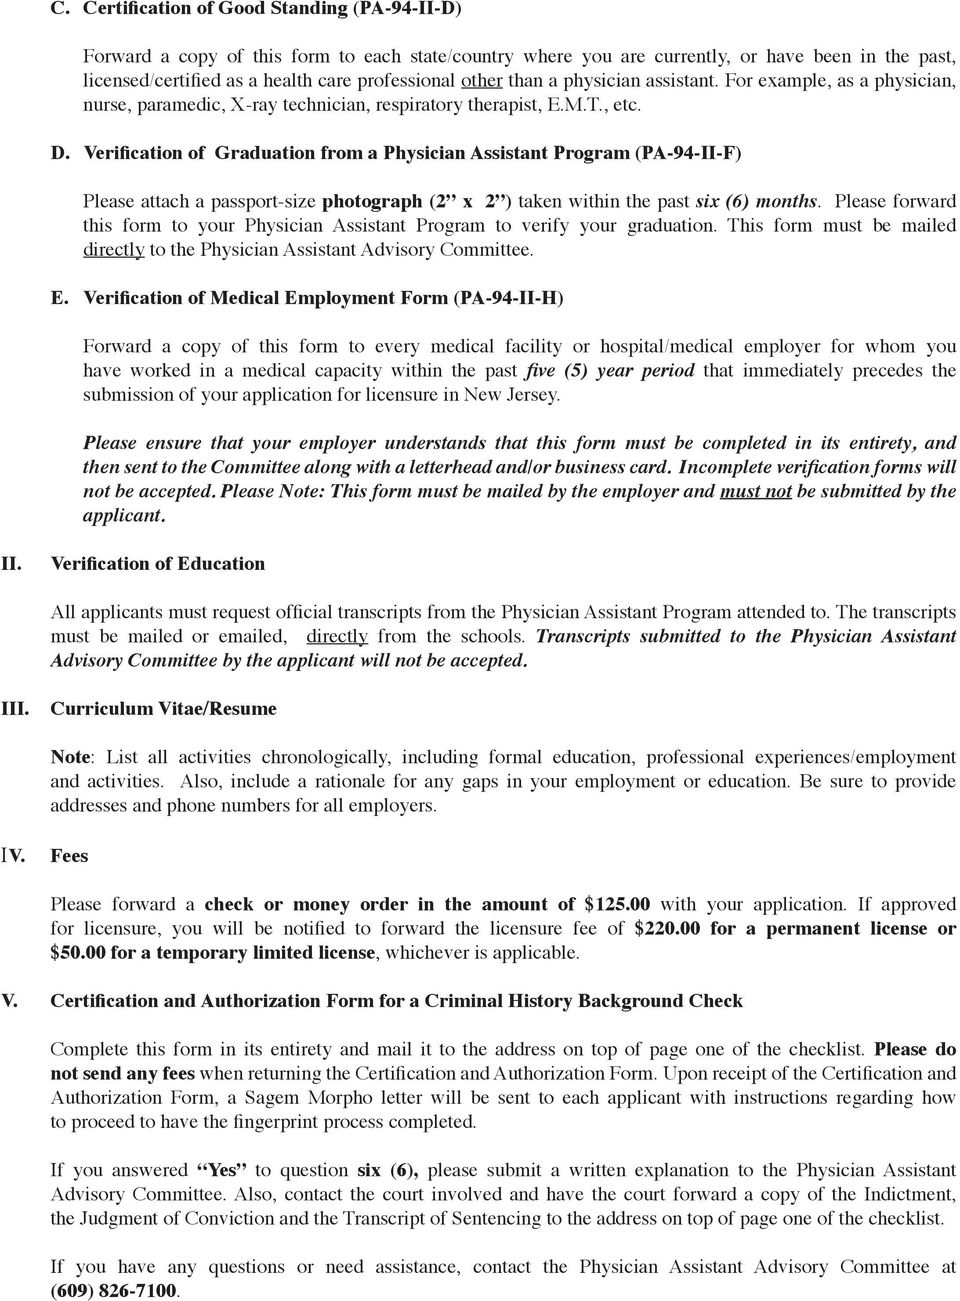 Physician Assistant Application For Licensure Checklist Pdf